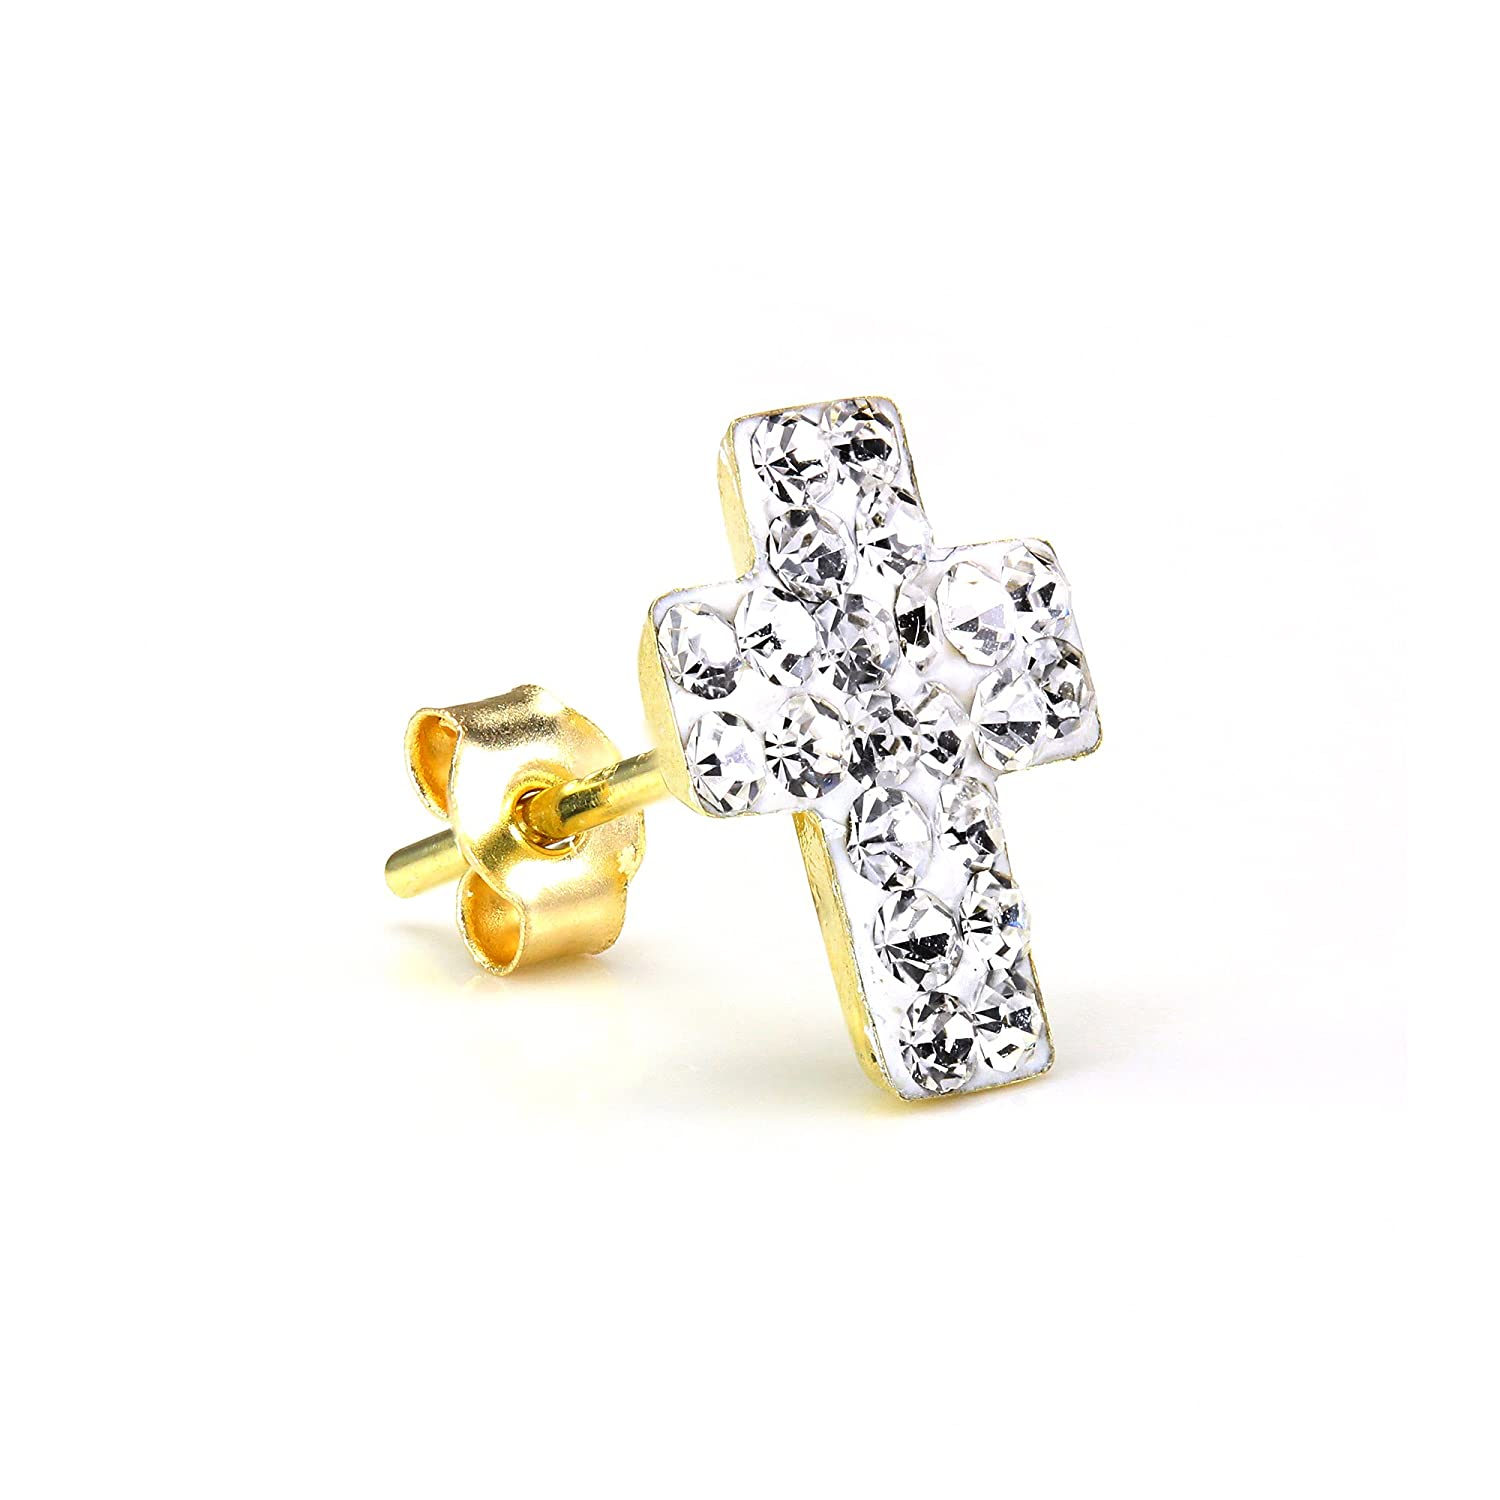 9686ef83e2c70 9ct Gold & CZ Crystal Encrusted Mens Single Cross Ear Stud Earring